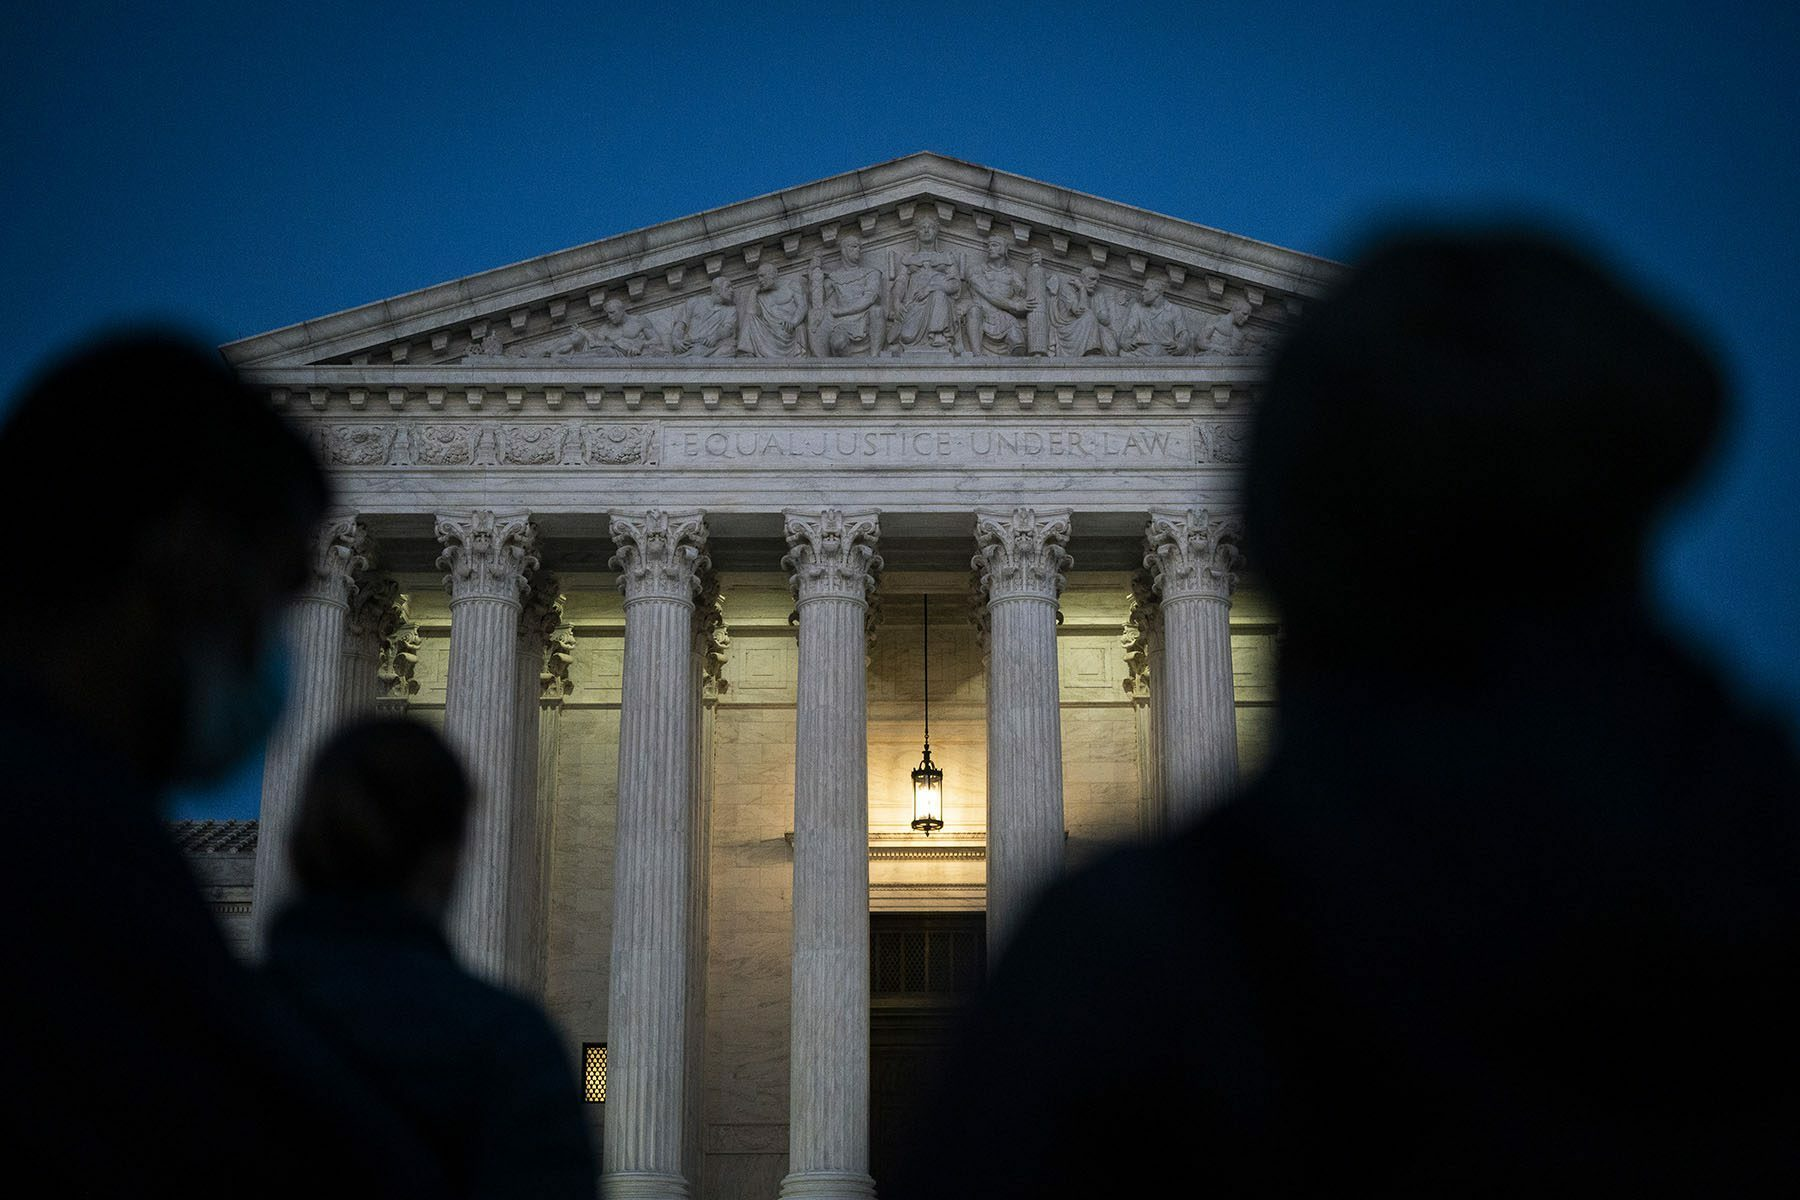 Shadowy figures are seem standing in front of the U.S. Supreme court.